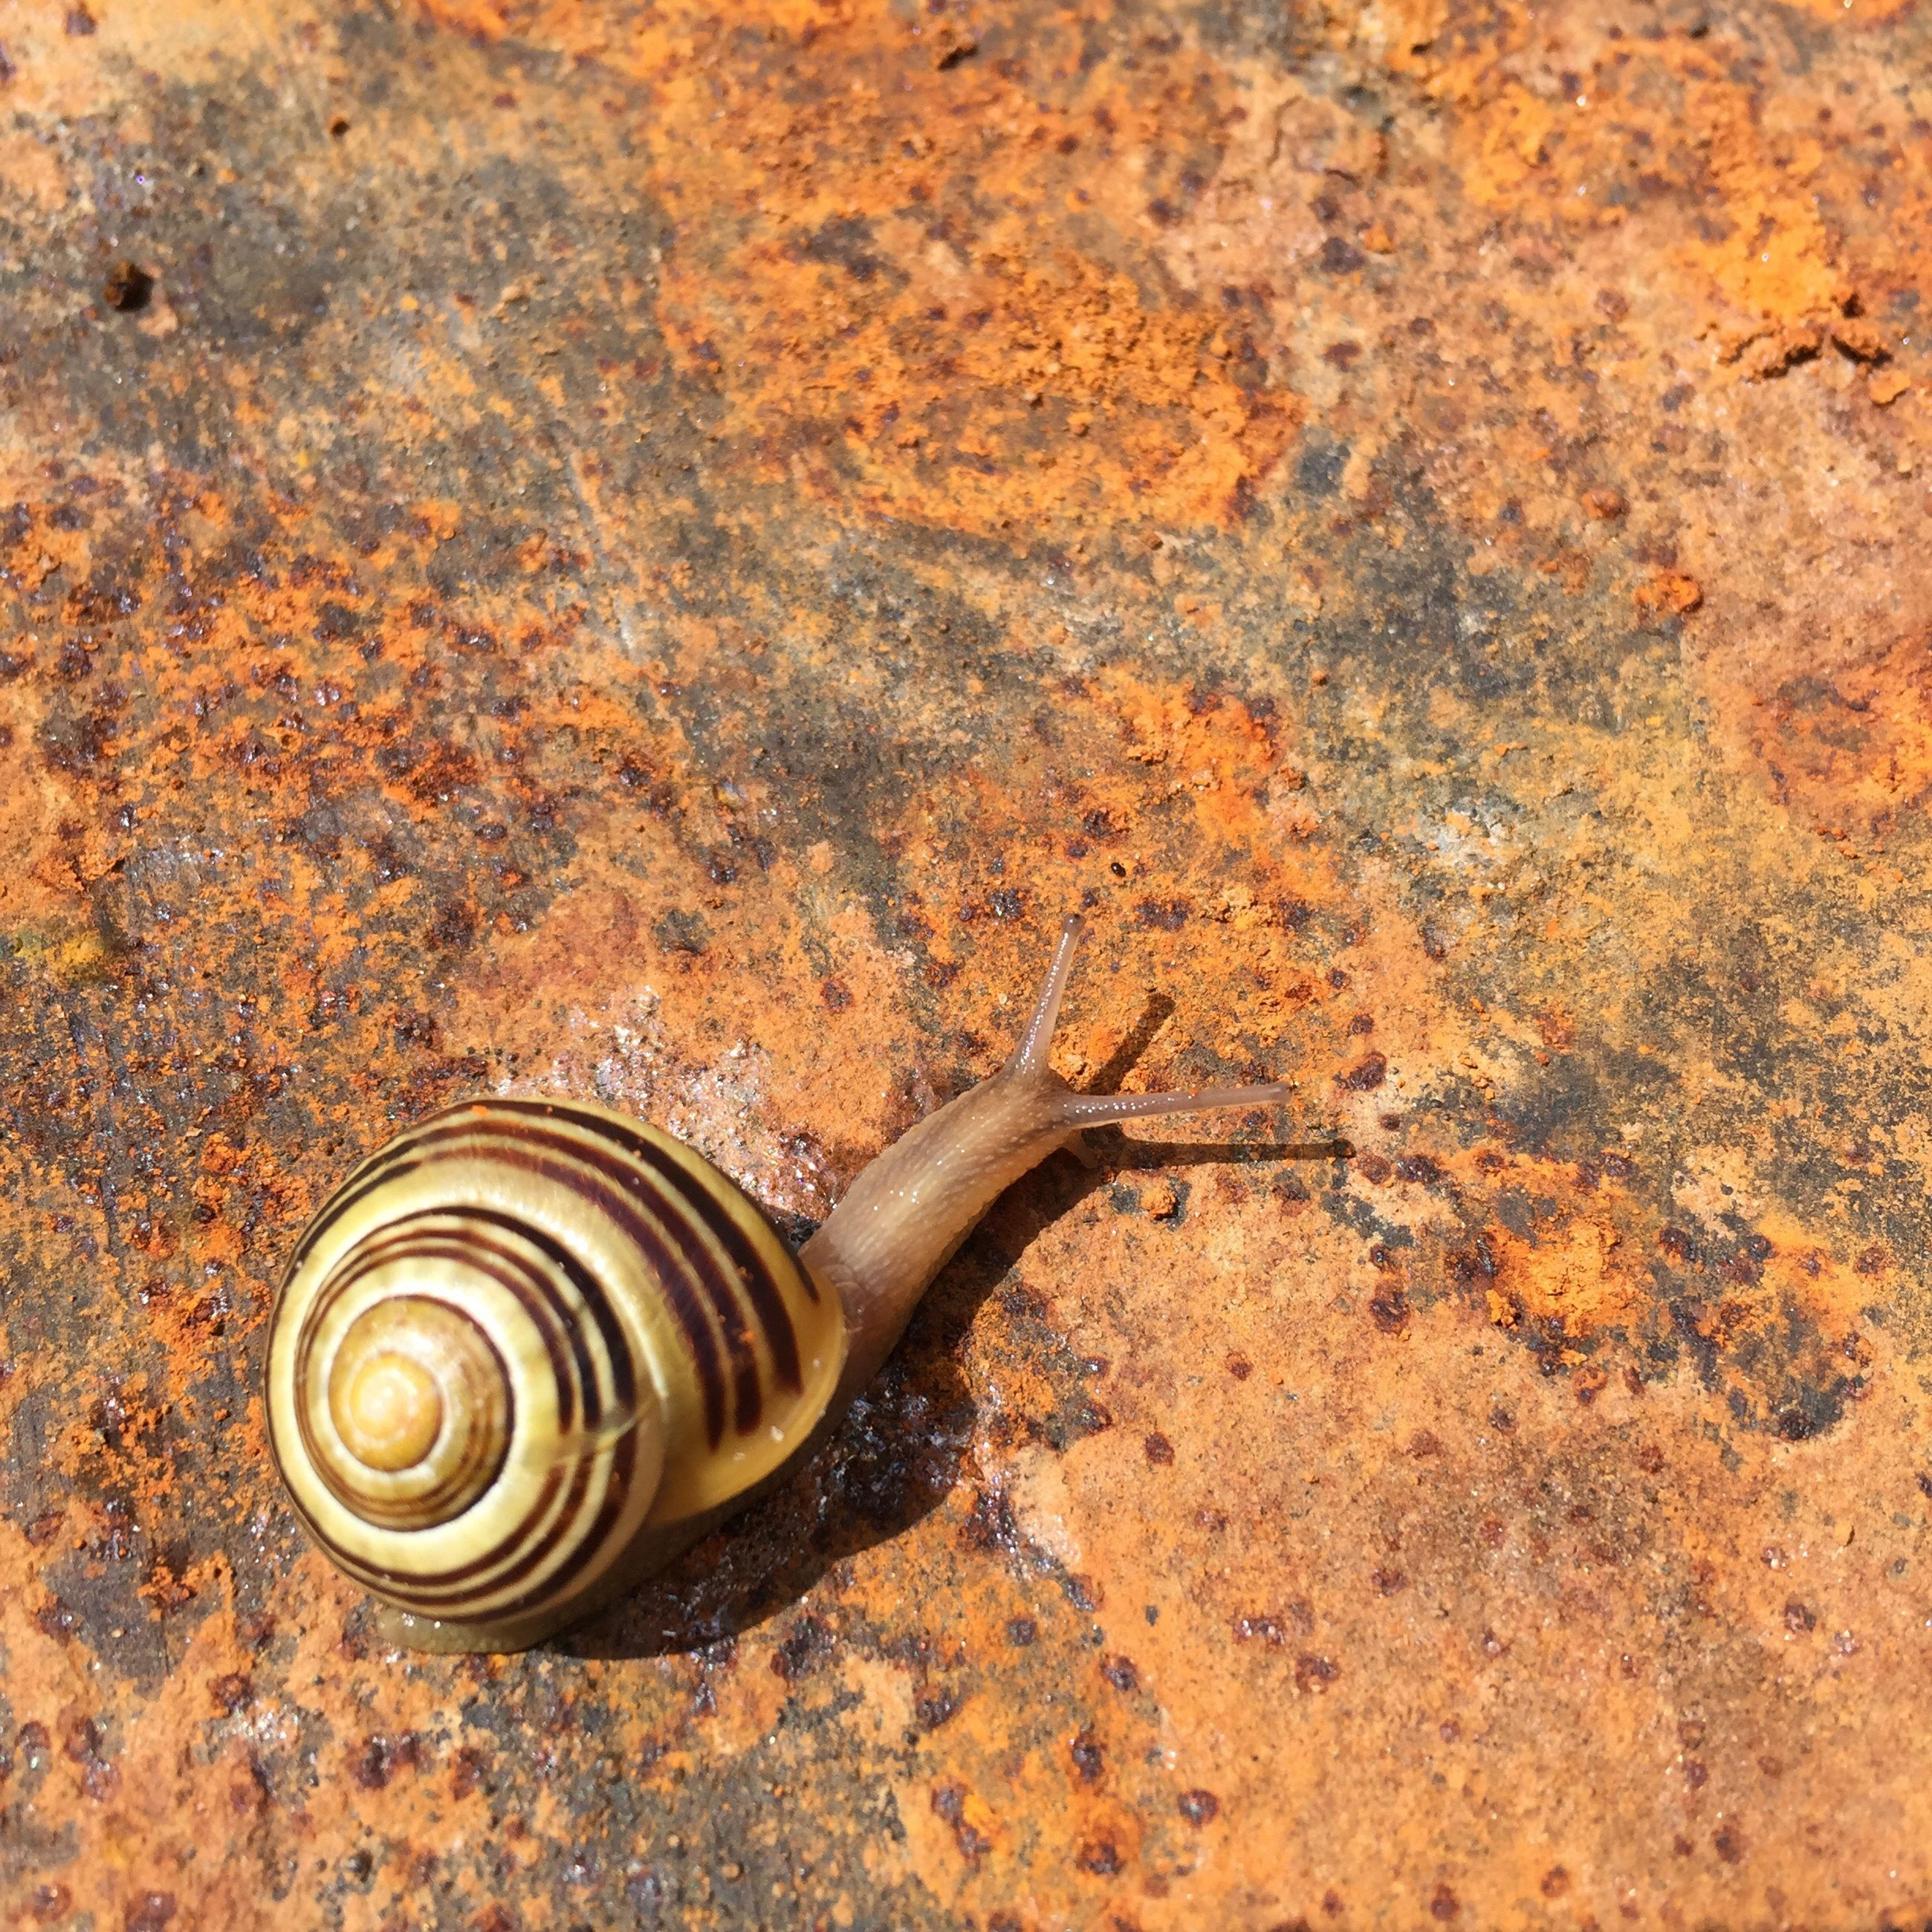 animal shell, snail, close-up, shell, outdoors, day, nature, no people, ground, natural pattern, spiral, focus on foreground, selective focus, detail